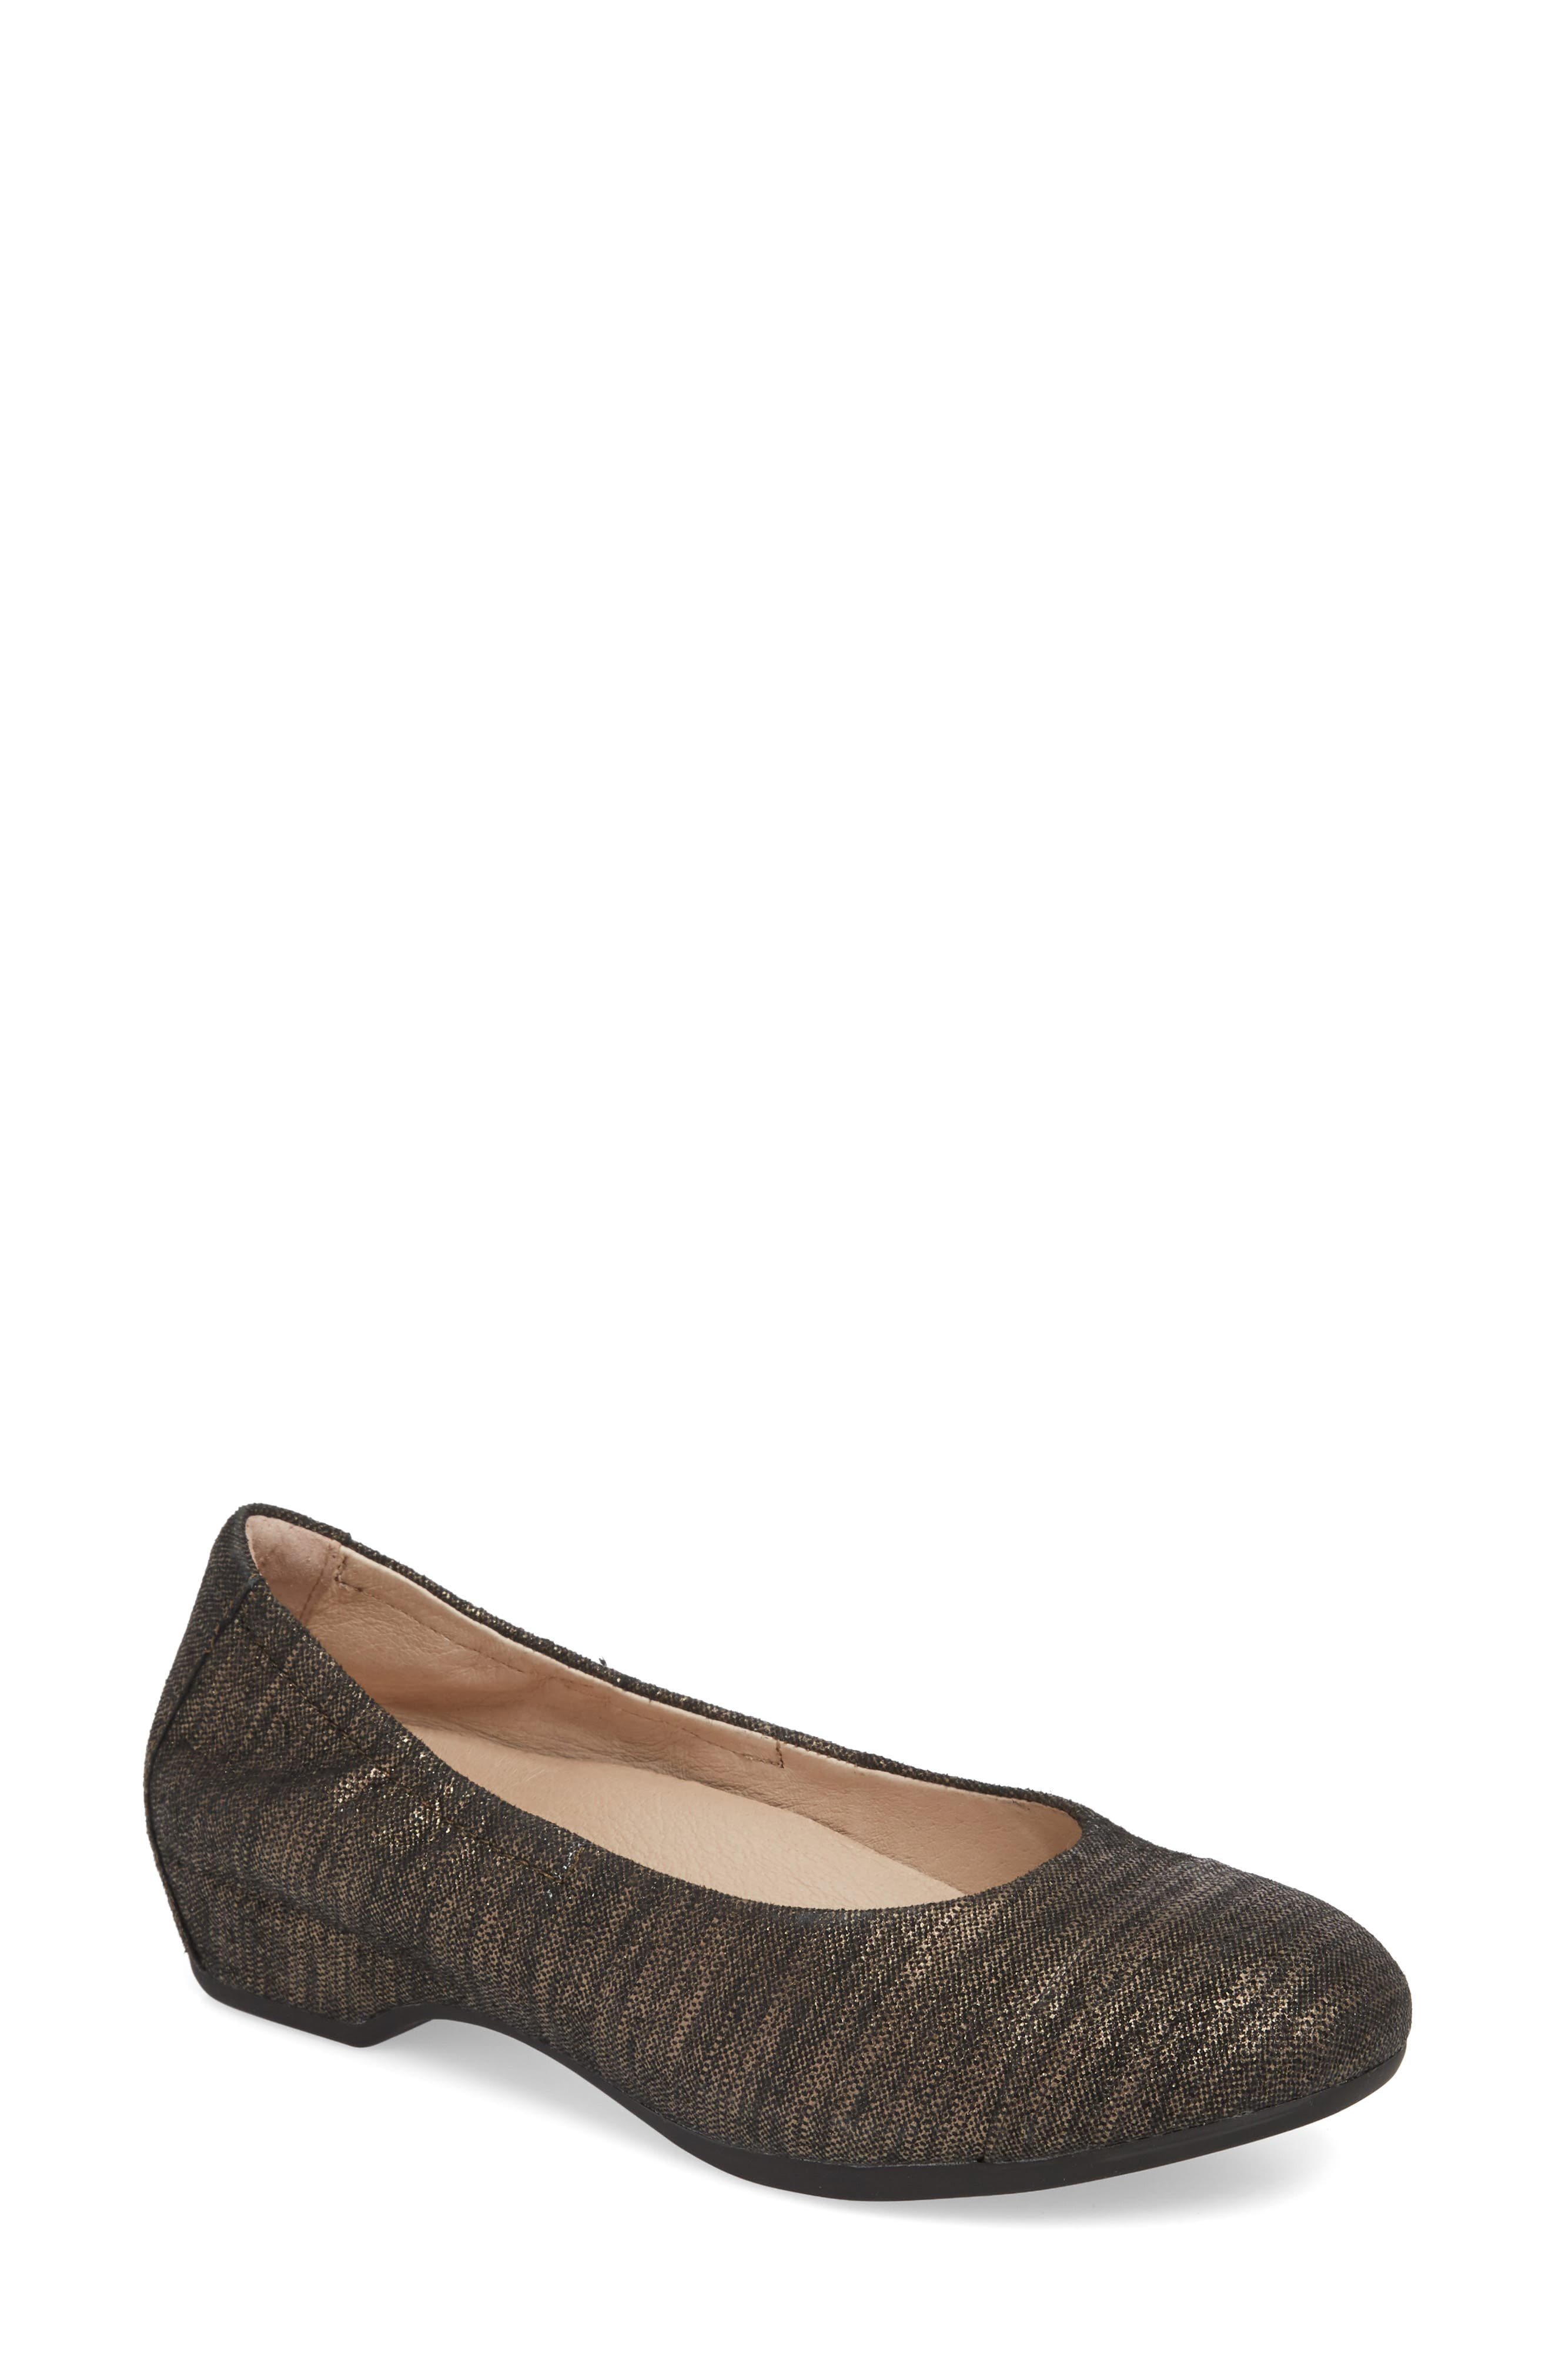 DANSKO, Lisanne Flat, Main thumbnail 1, color, PEWTER TEXTURED LEATHER